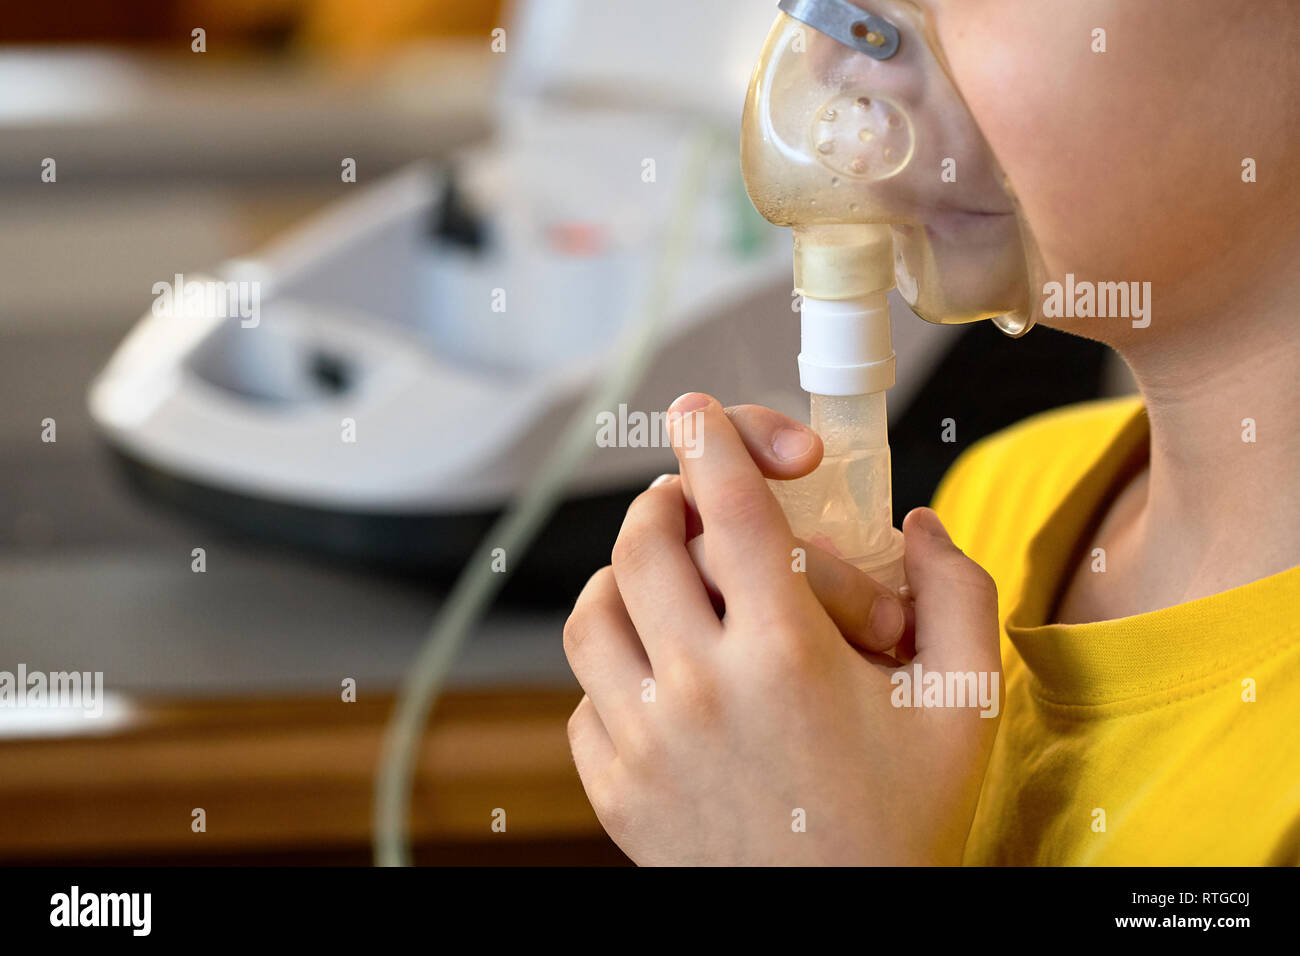 Сhild makes inhalation at home with nebulizer on out of focus background. Example of combating respiratory diseases such as tracheitis bronchitis pneu - Stock Image